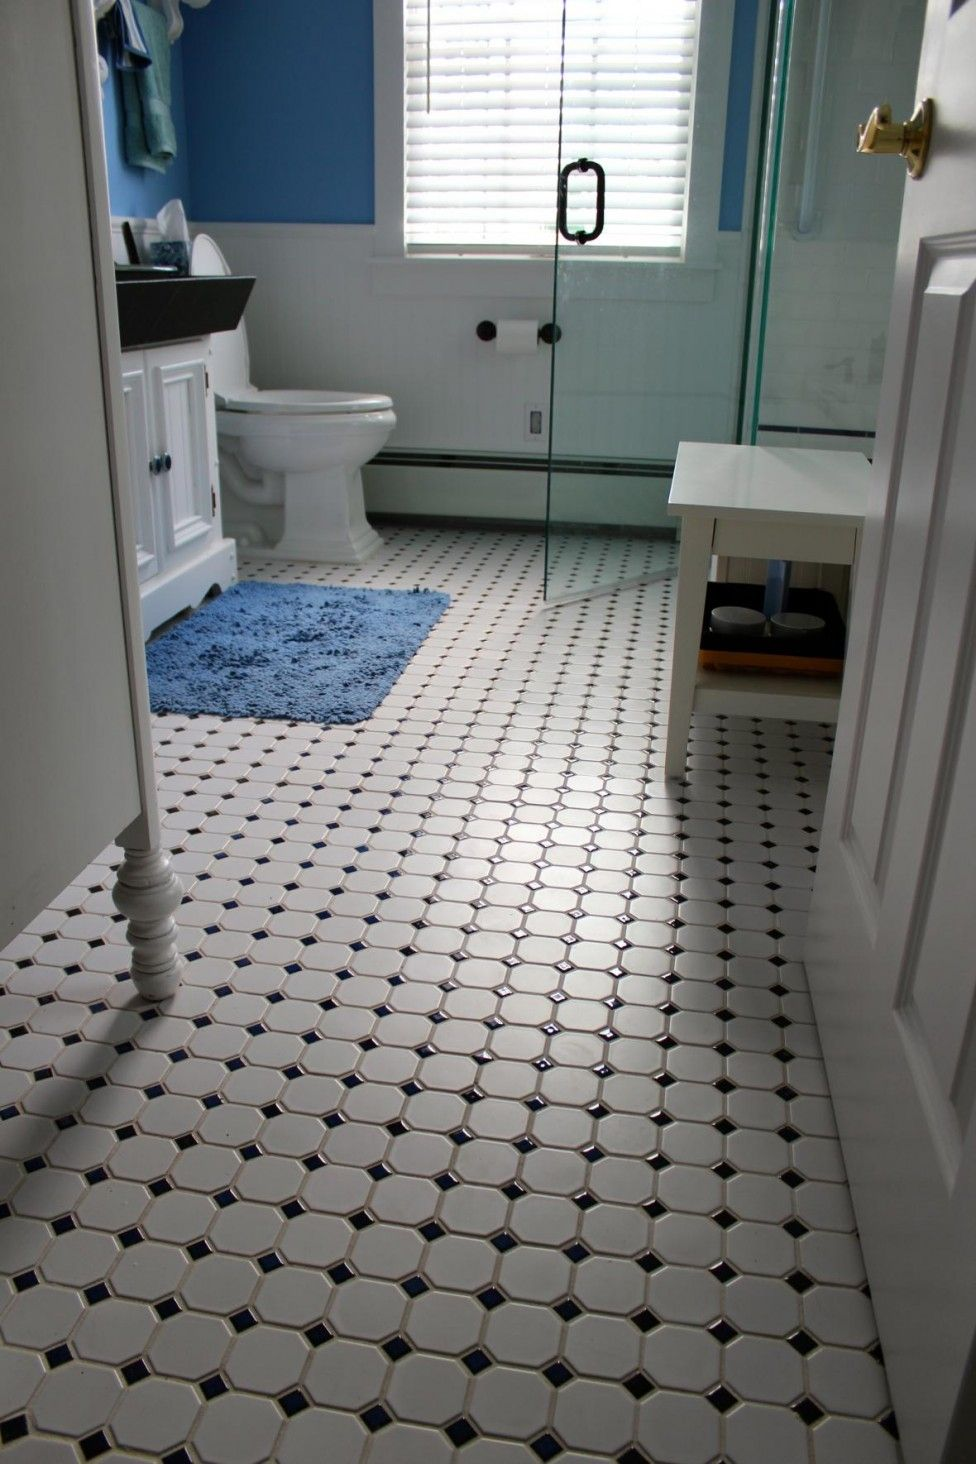 Appealing black and white bathrooms tile octagon with for Dark blue bathroom tiles